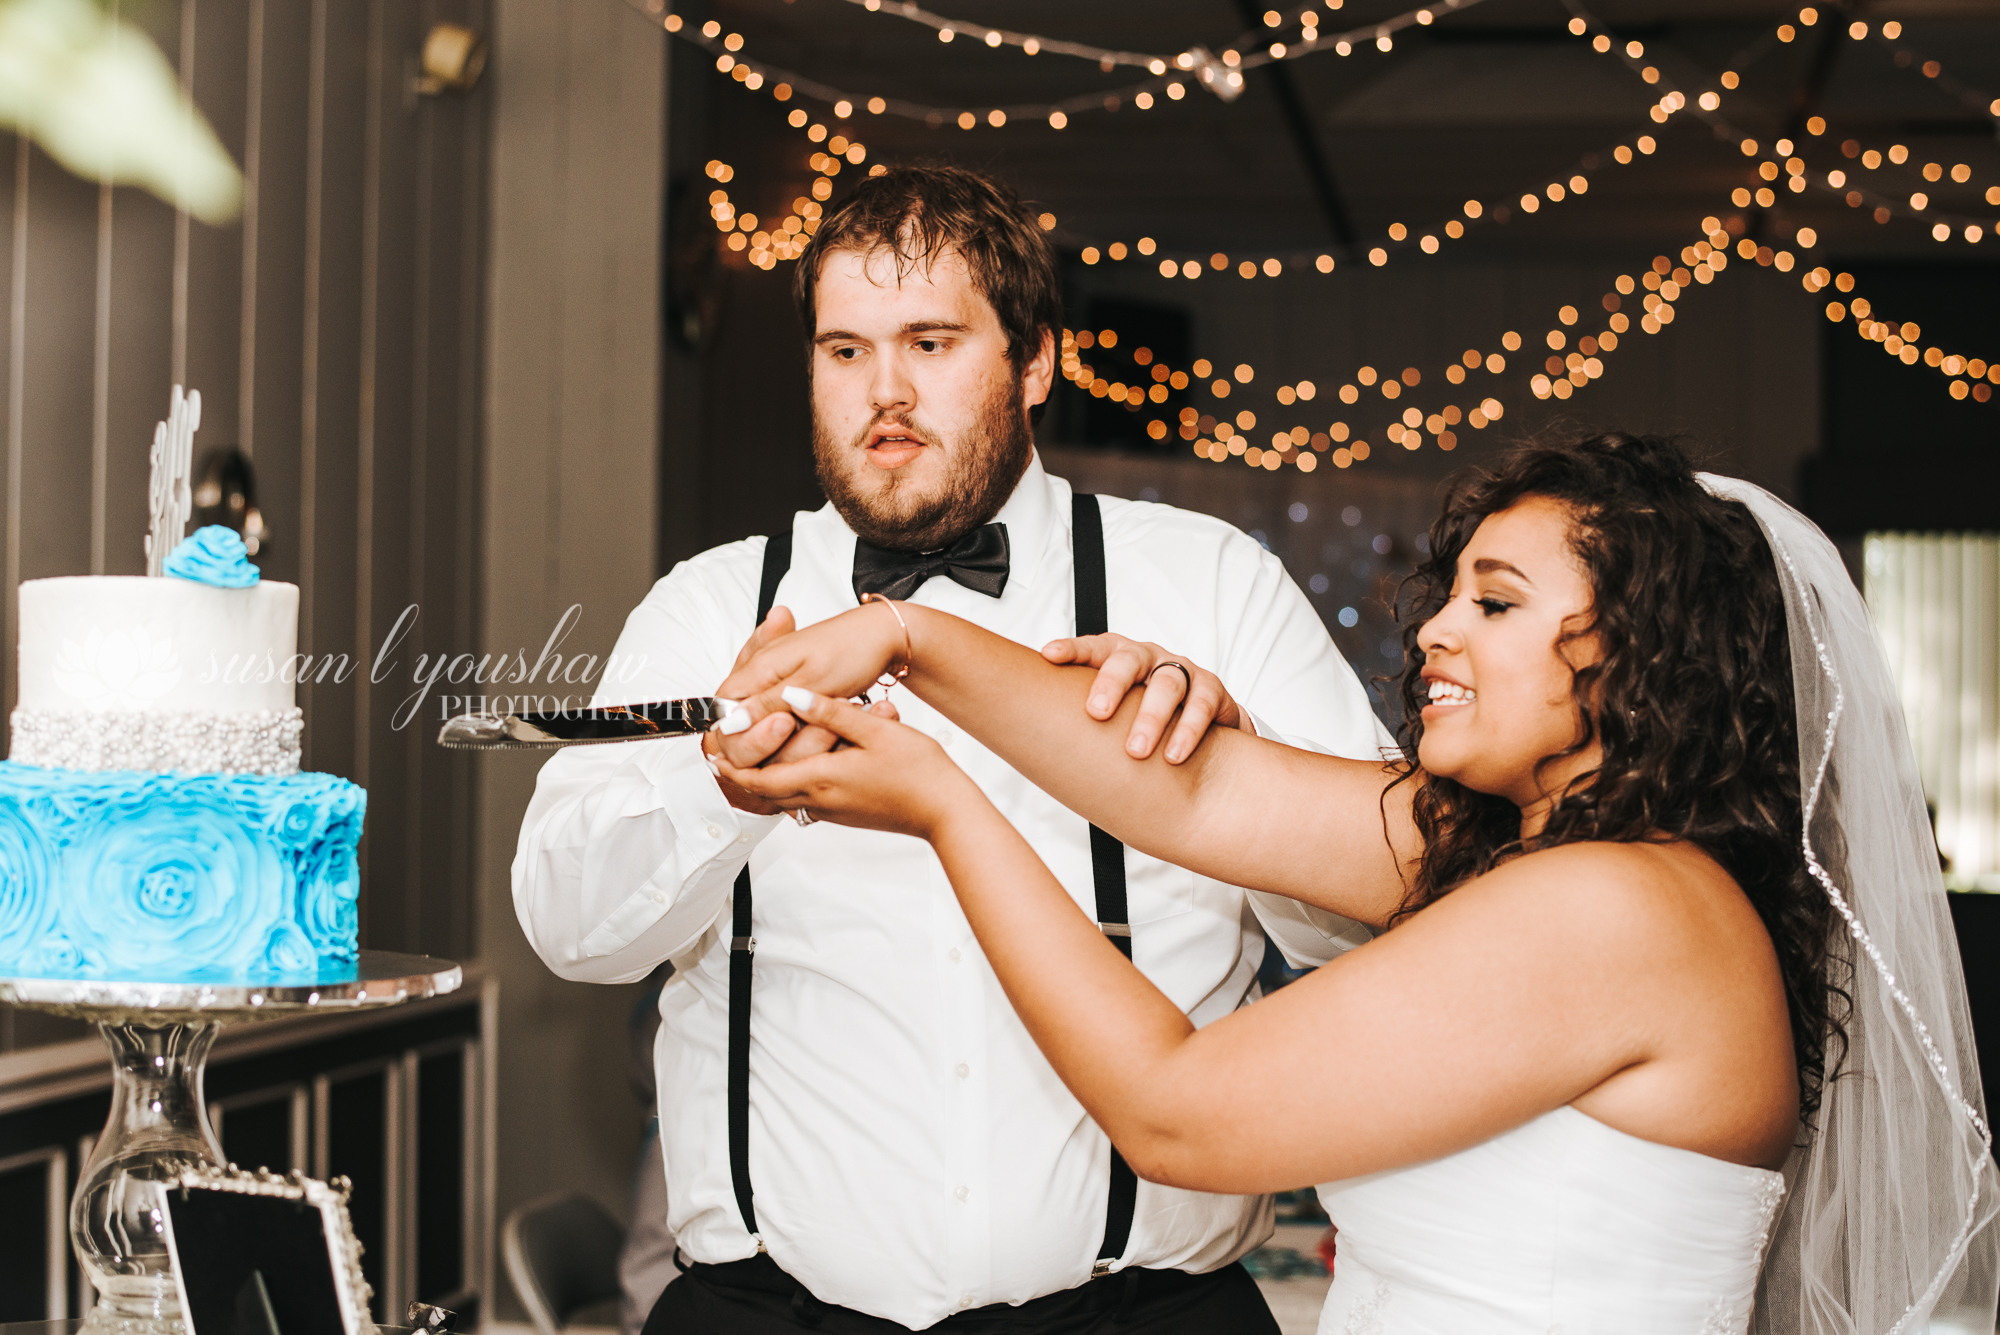 Katelyn and Wes Wedding Photos 07-13-2019 SLY Photography-109.jpg